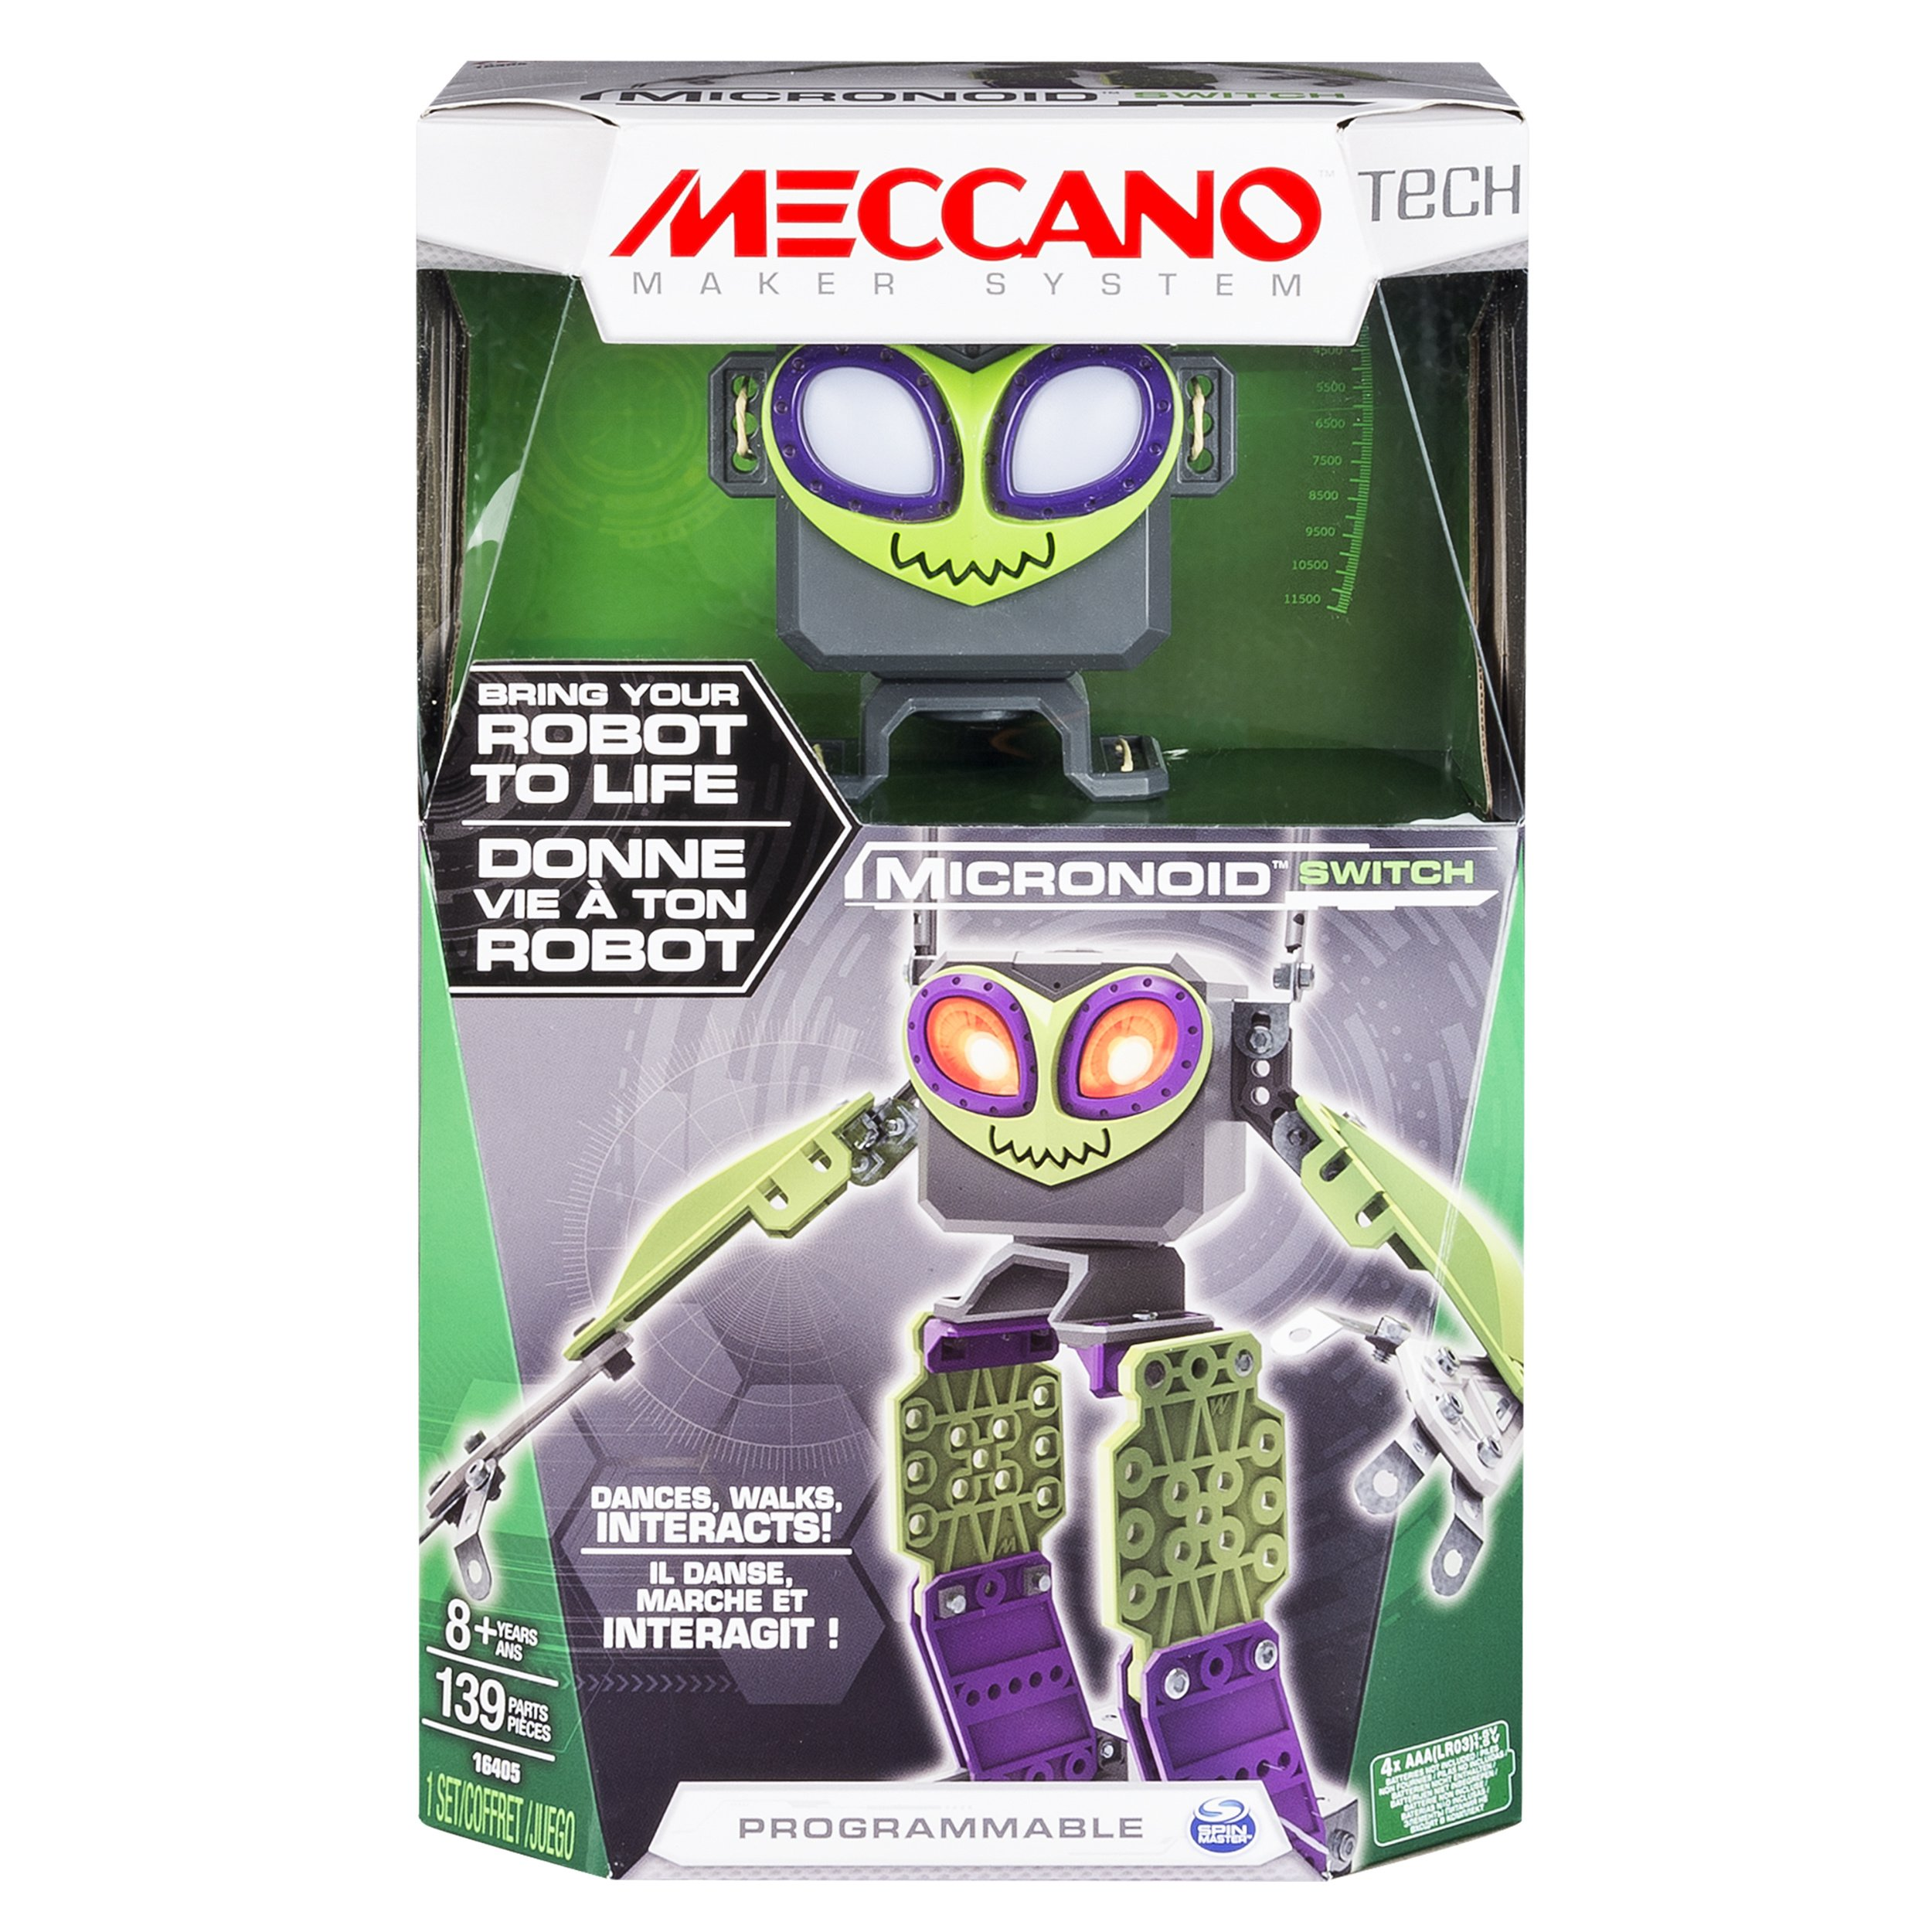 Meccano - Micronoid - Green Switch